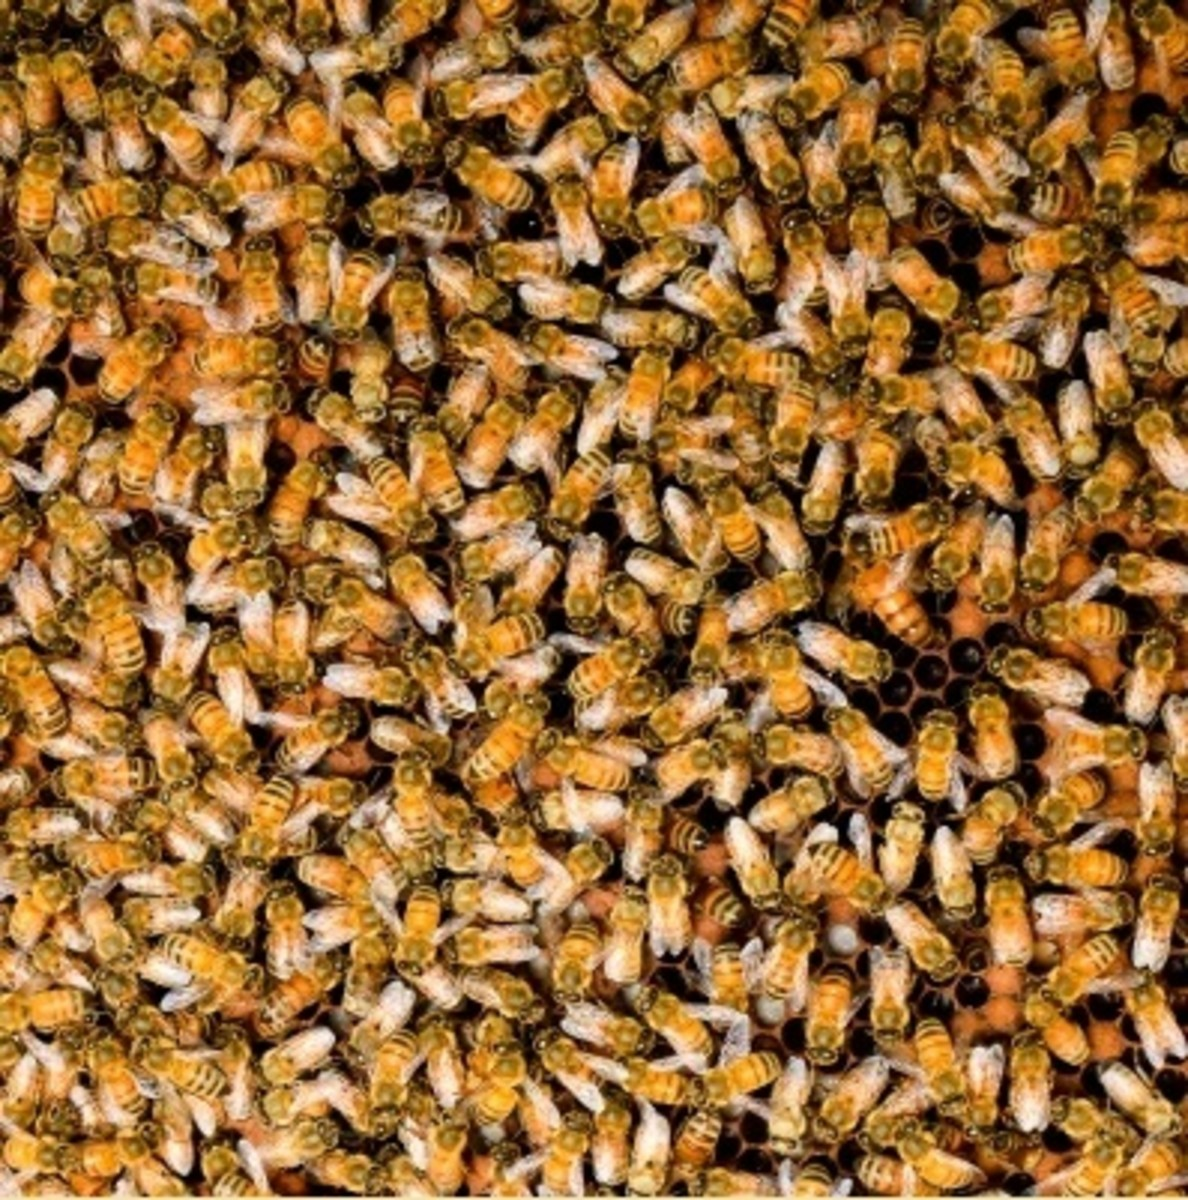 Why Bee Venom Therapy for Multiple Sclerosis?